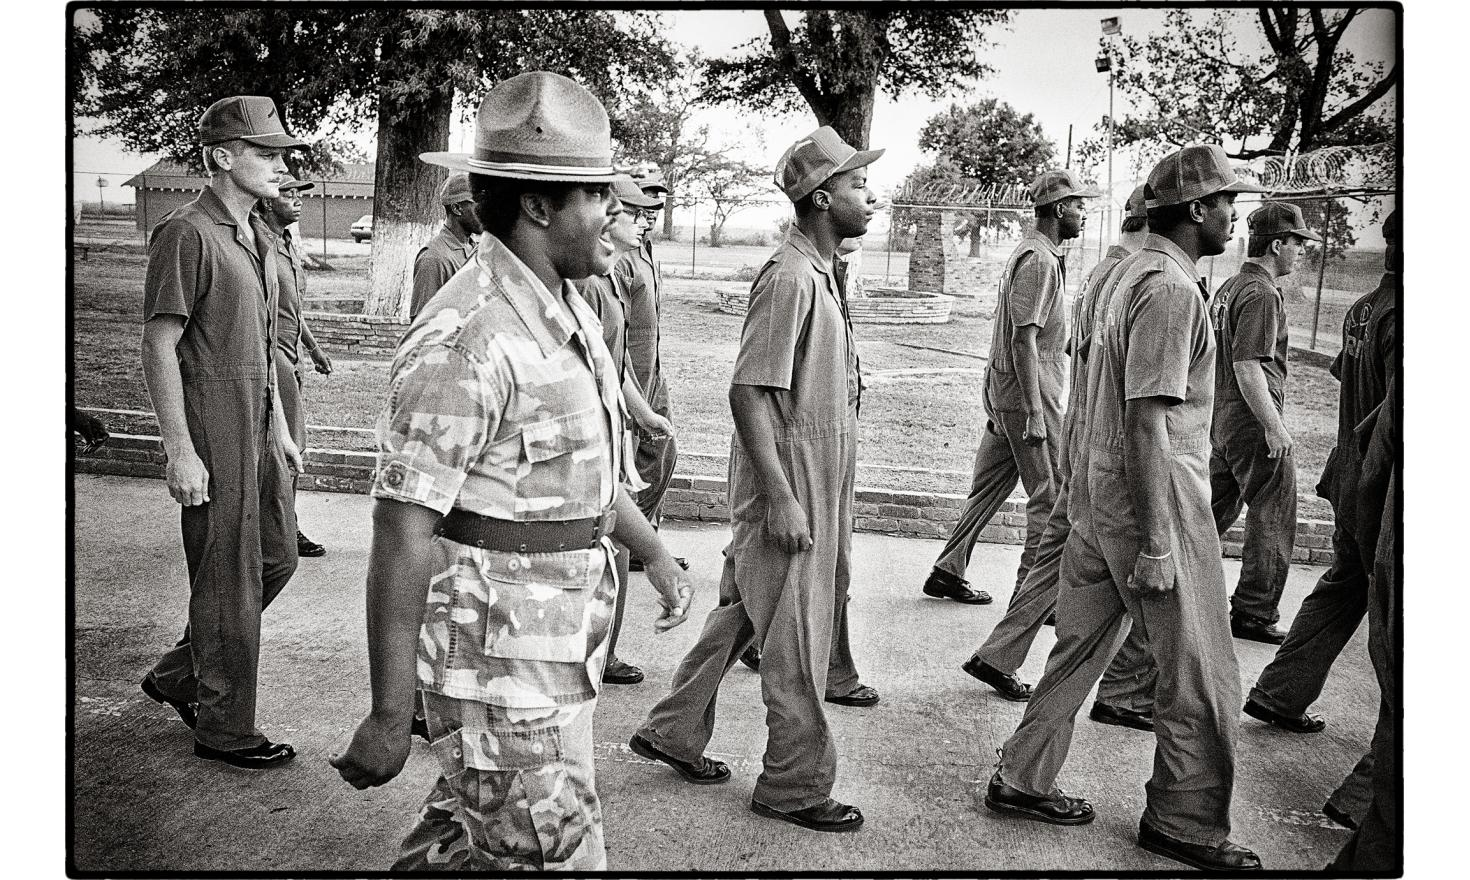 Mississippi State Penitentiary (MSP), also known as Parchman Farm, is a prison farm, the oldest prison, and the only maximum security prison for men in the state of Mississippi.Death penalty is still enforced - 1986.